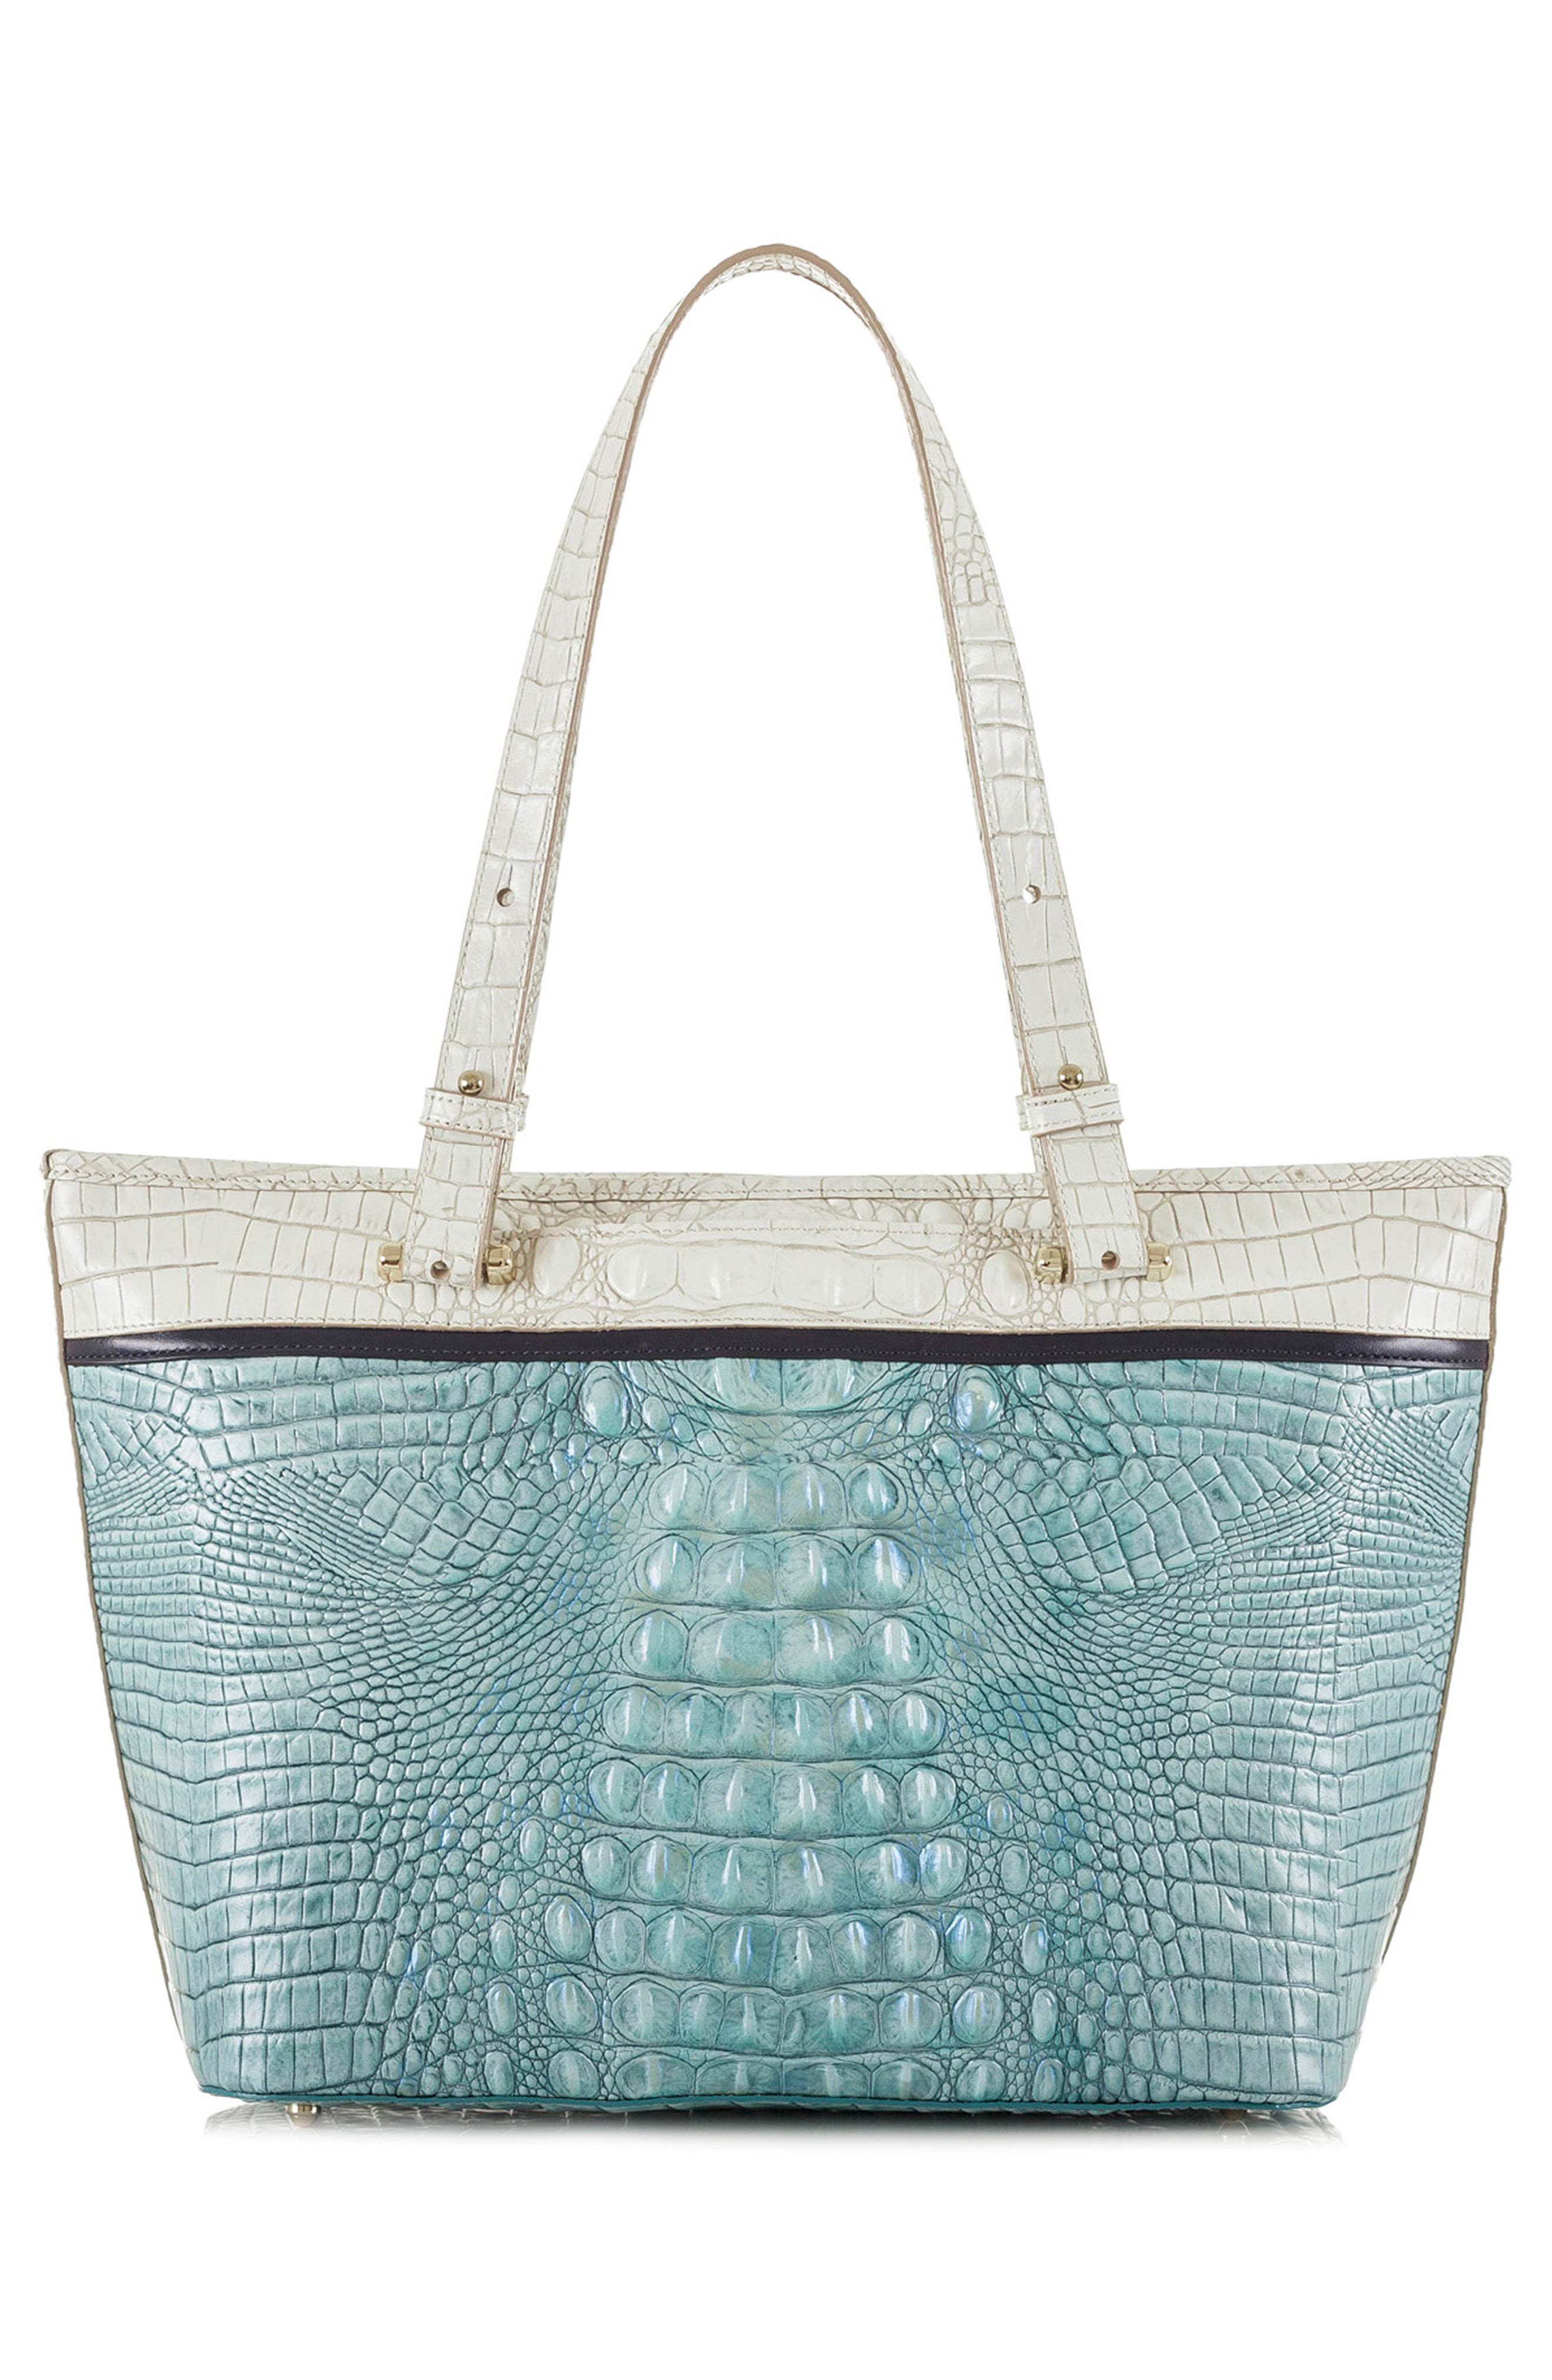 Medium Asher Embossed Leather Tote,                             Alternate thumbnail 2, color,